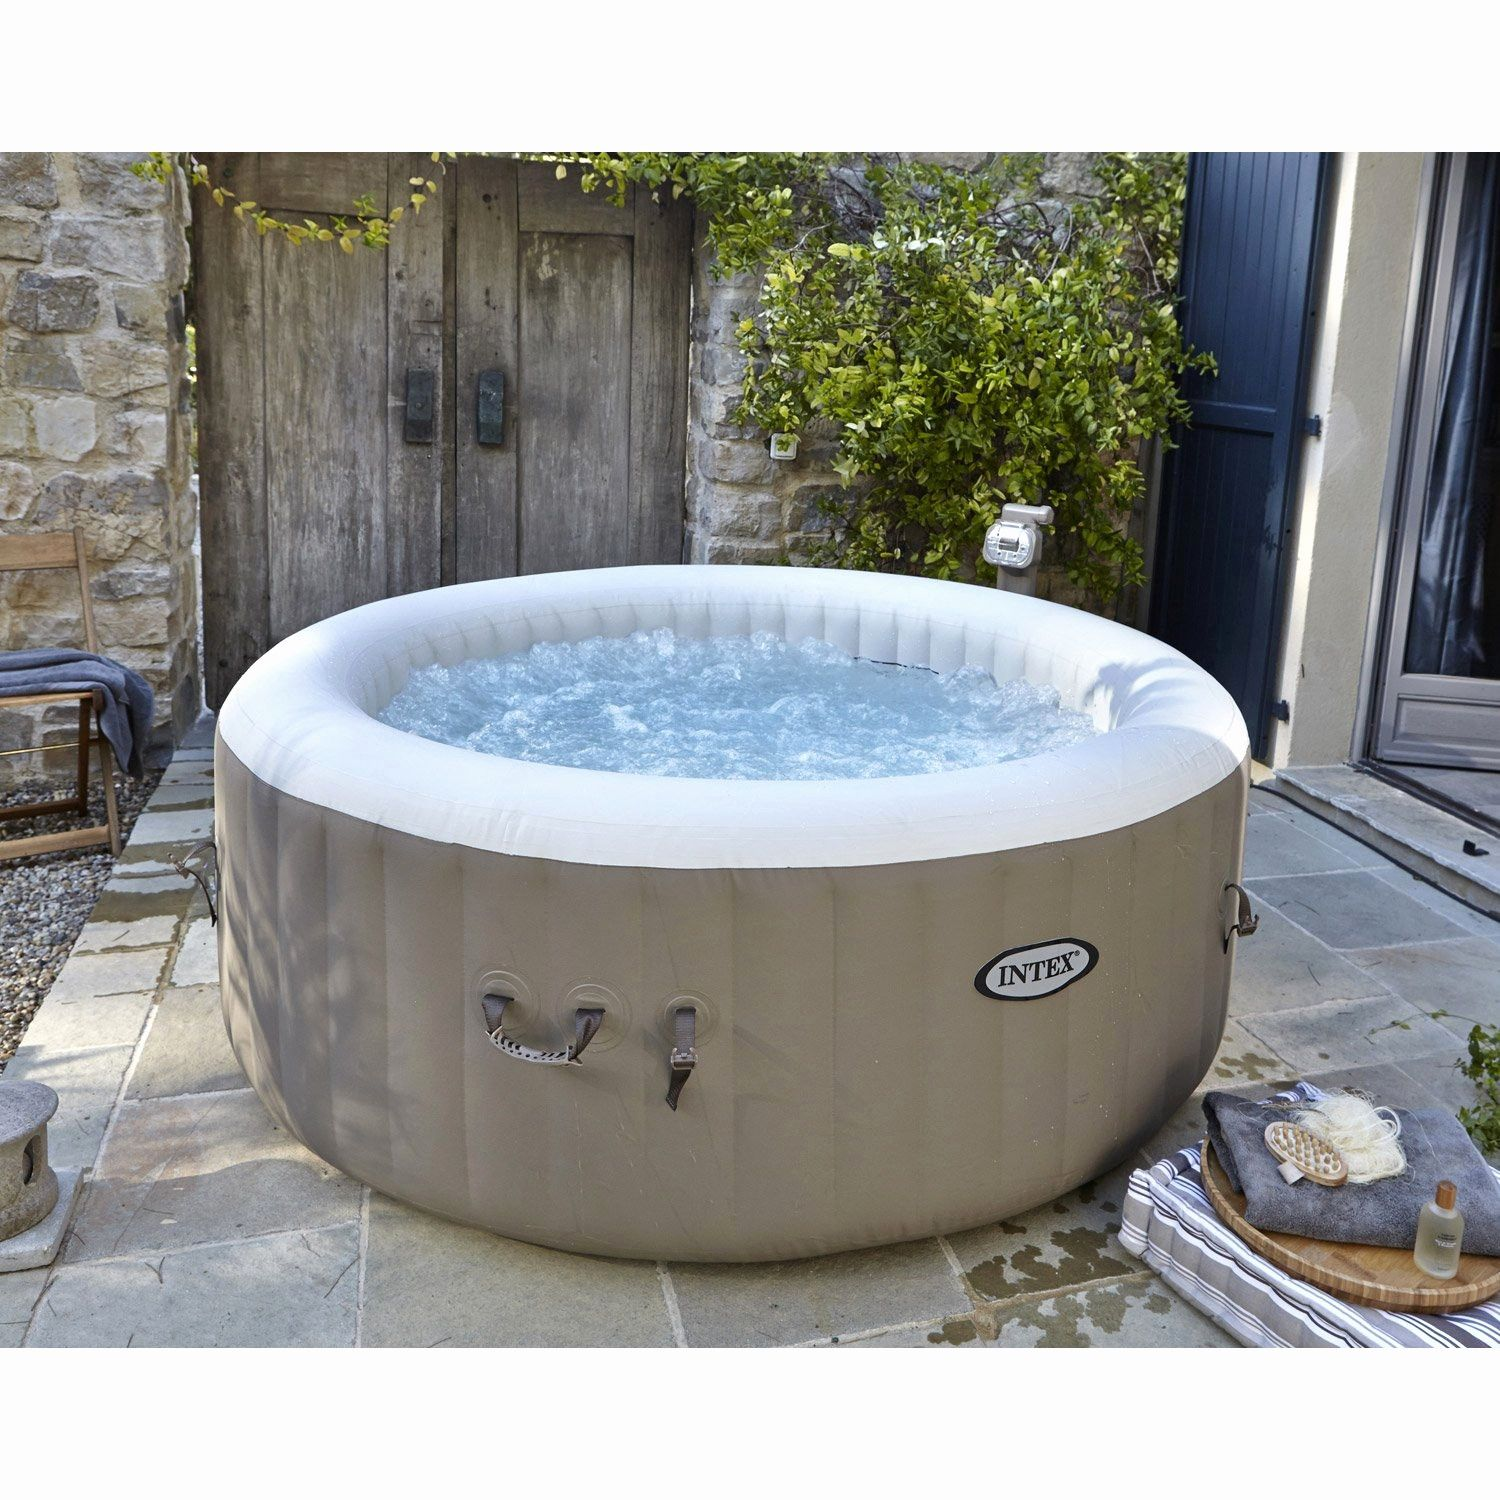 Beautiful Spa Jacuzzi Leroy Merlin Jacuzzi Intex Jacuzzi Spas